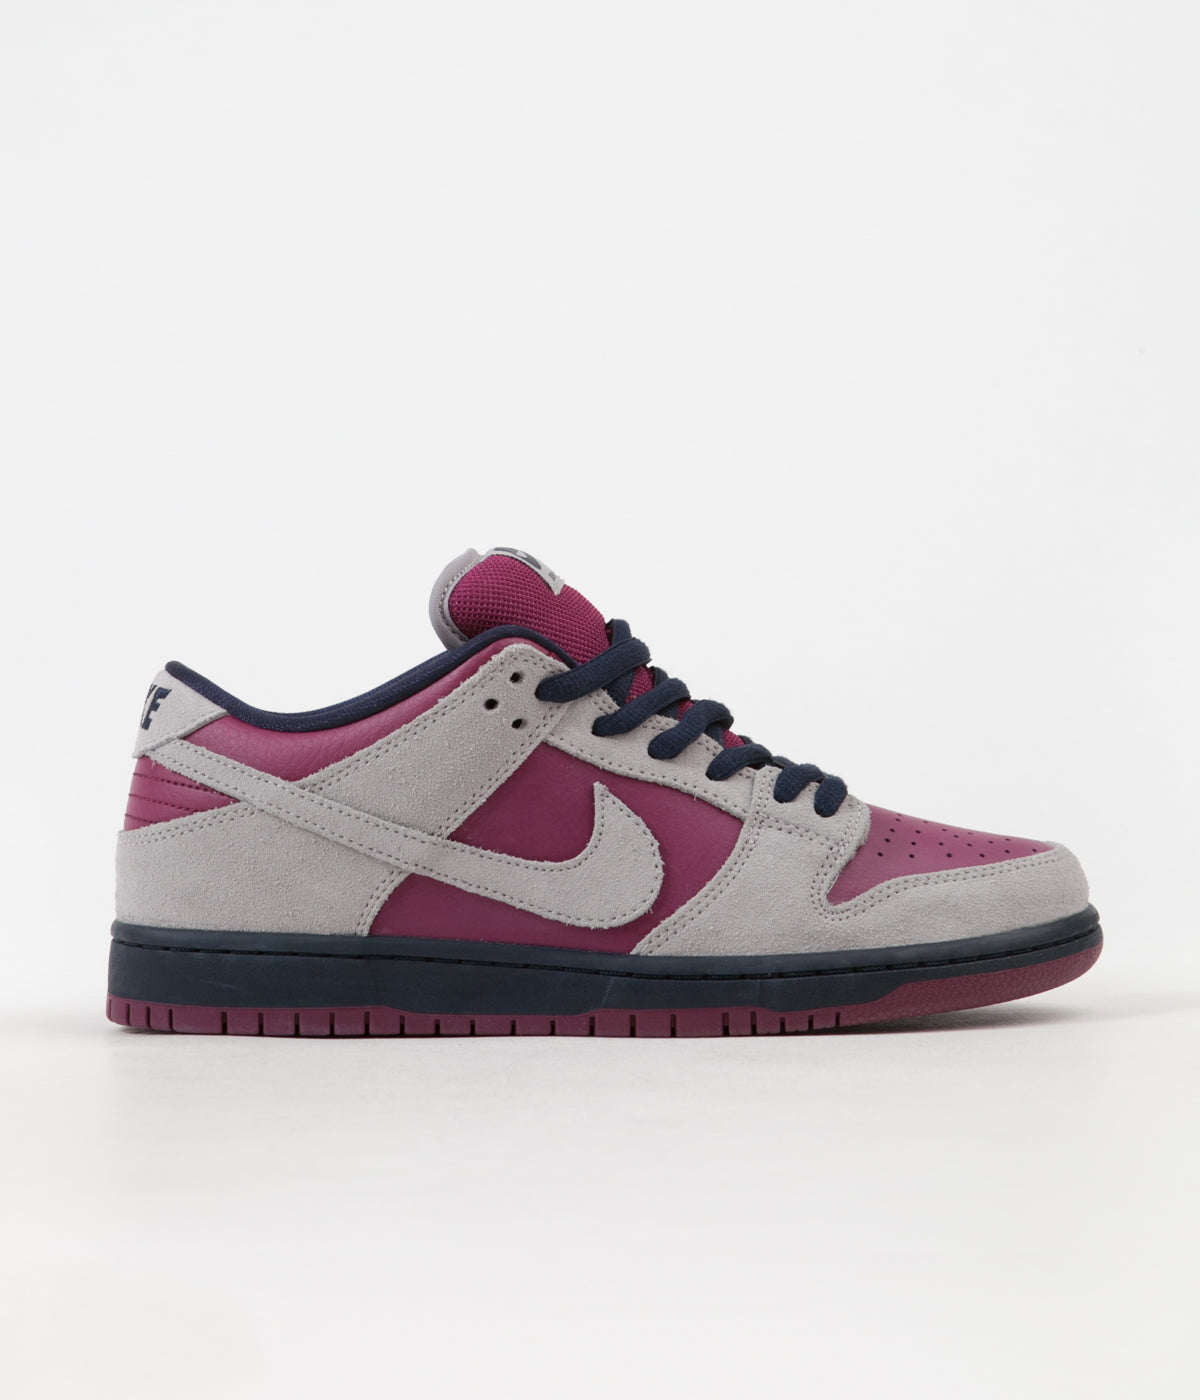 newest collection 65ee0 5f029 Nike SB Dunk Low Pro Shoes - Atmosphere Grey / Atmosphere ...